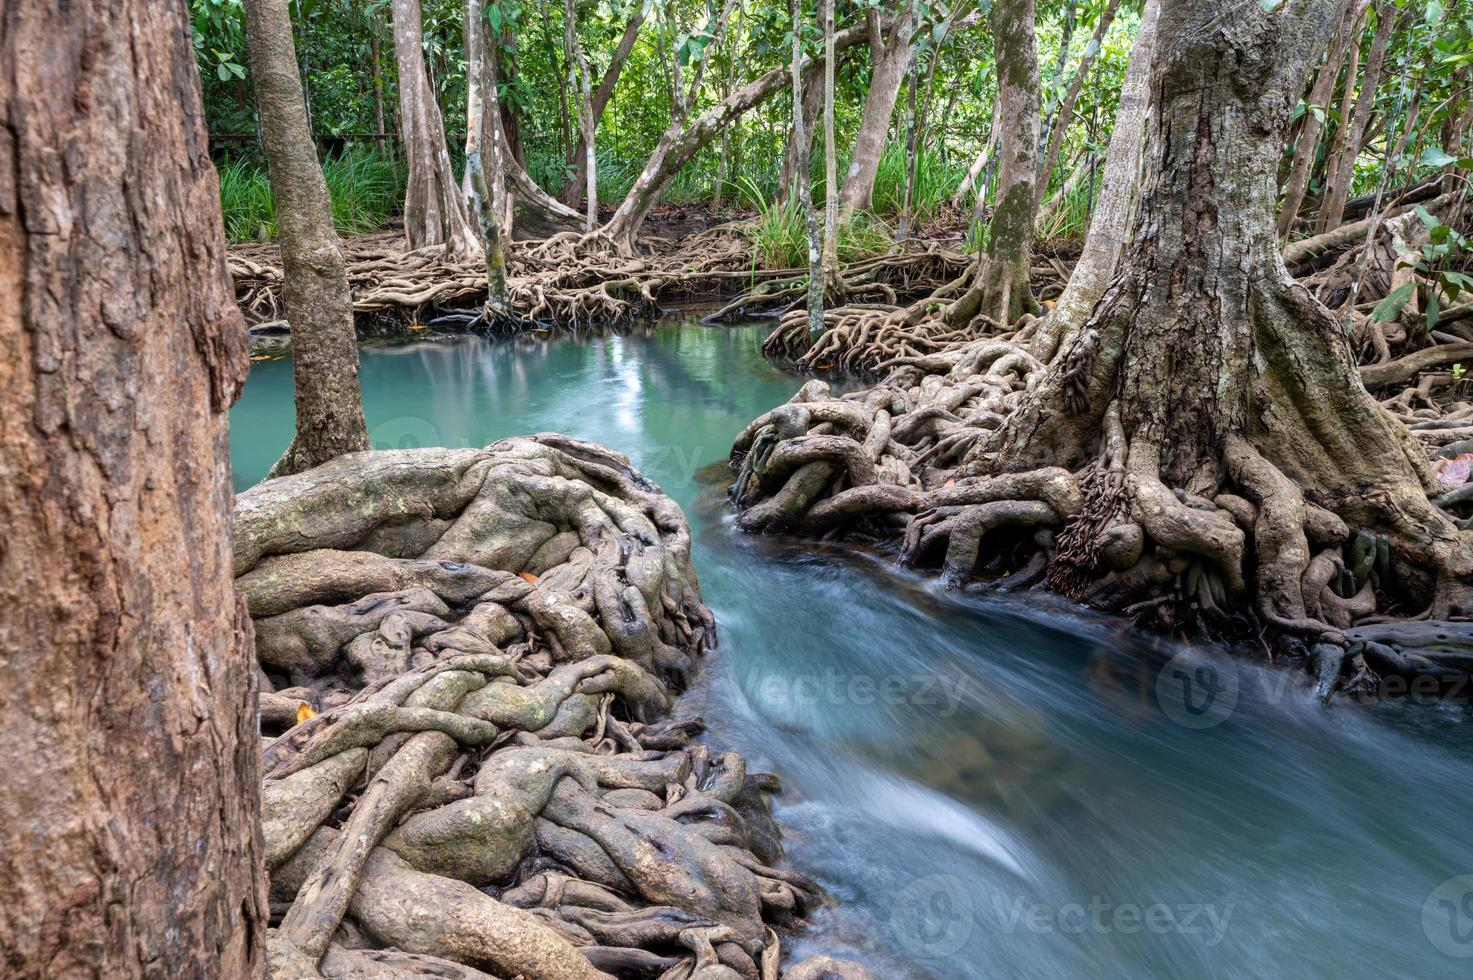 Stream of water and beautiful roots of trees in Krabi, Thailand photo